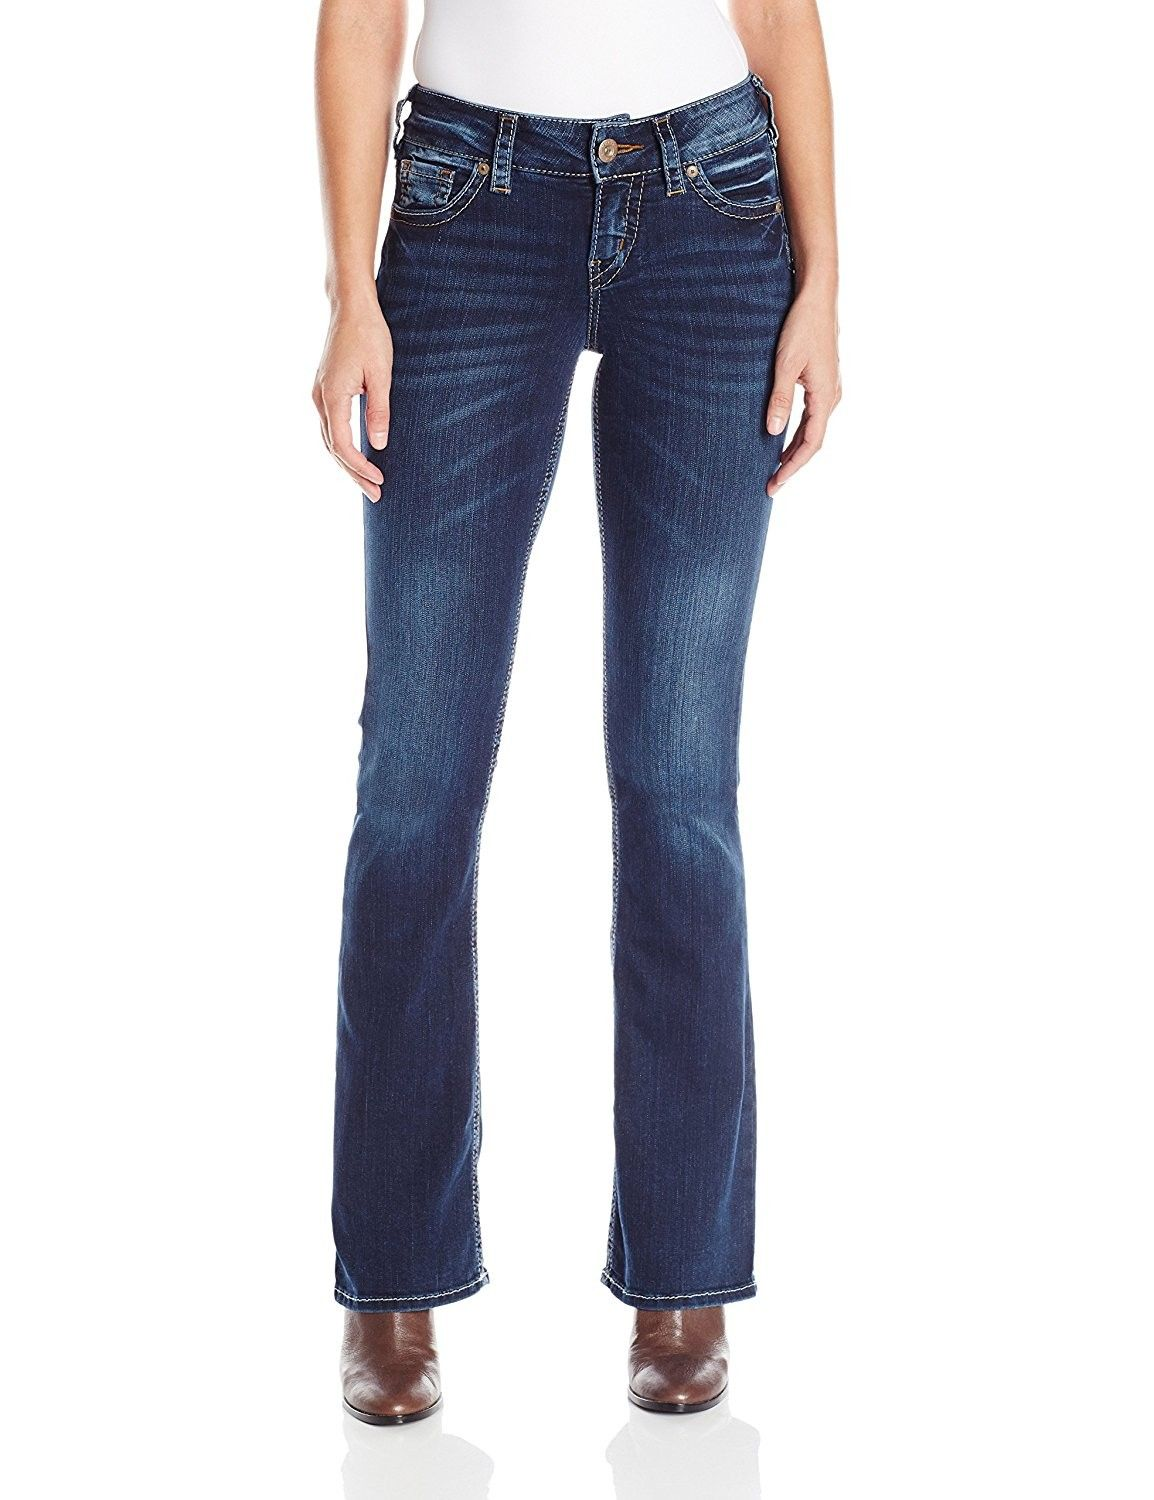 2d0a2b60 Women's Clothing, Jeans, Silver Jeans Co. Women's Suki Curvy Fit Mid Rise  Bootcut Jeans With Flap Pockets - Mid Wash Indigo - CV12MX20S6W #women  #clothing ...